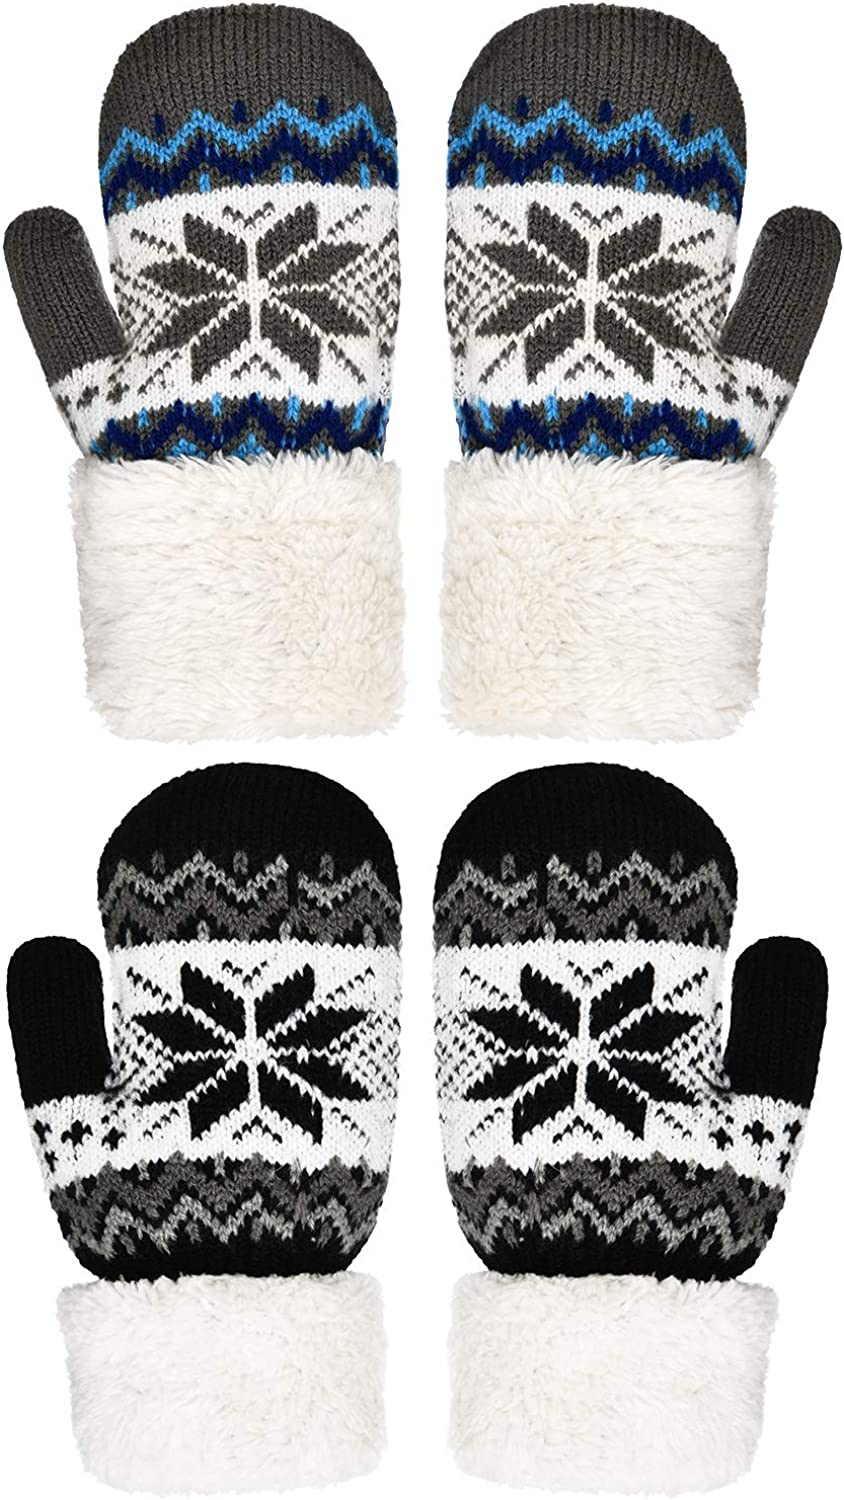 4 Pairs Kid Winter Fleece Lined Knit Mittens Full Finger Thicken Gloves Warm Snowflake Stretch Mittens Knit Gloves for Boys Girls